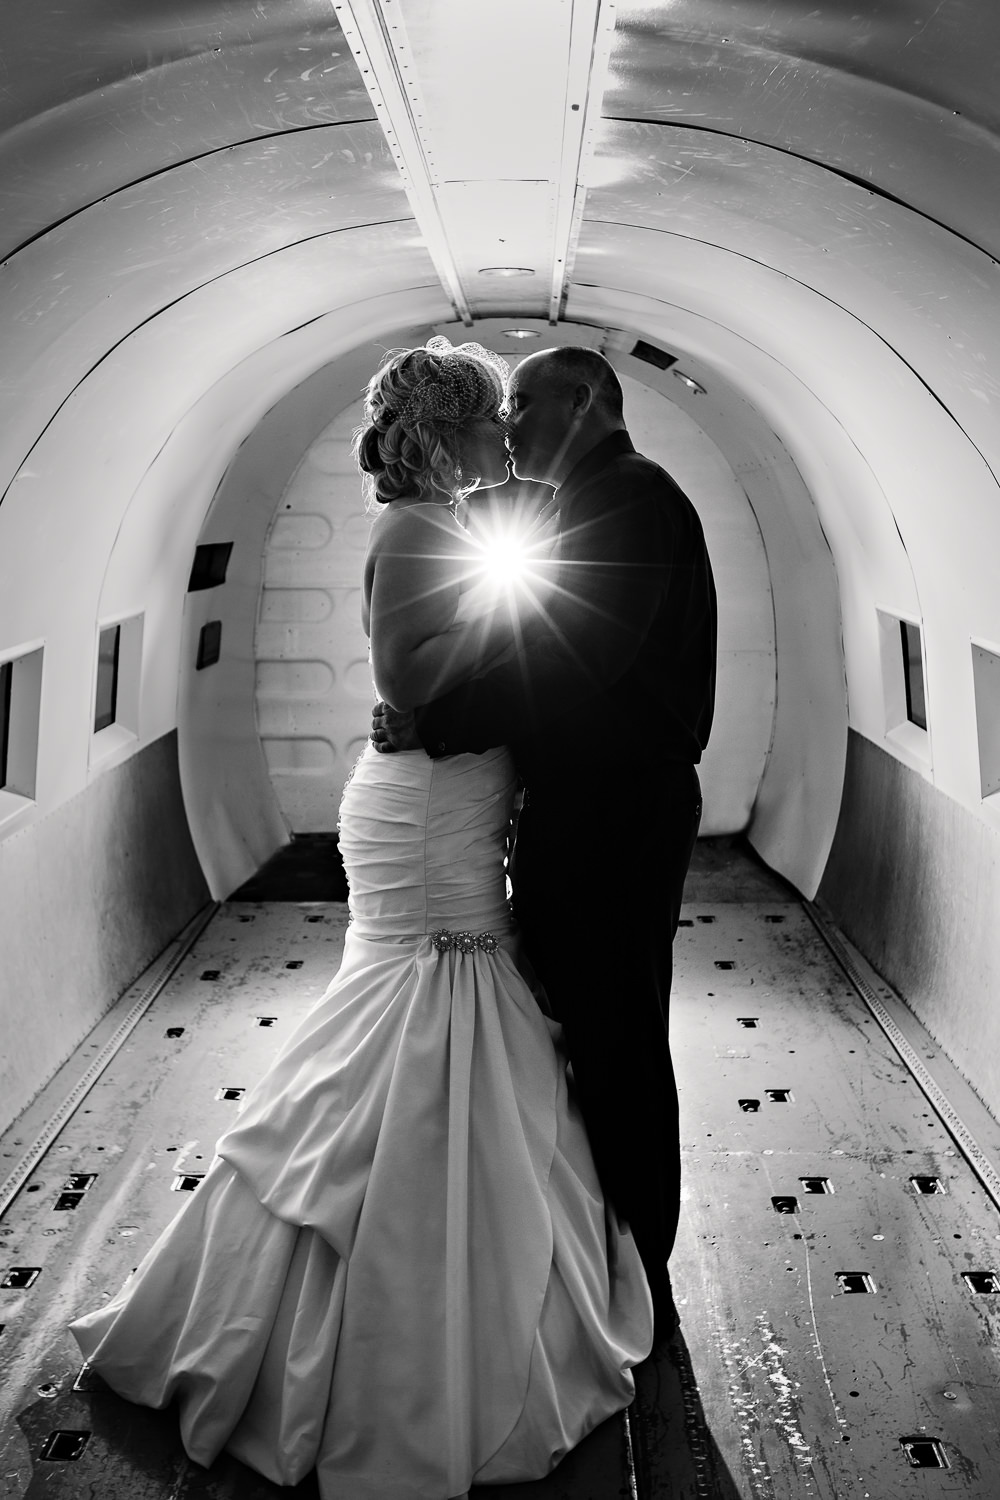 missoula-museum-mountain-flying-wedding-couple-kissing-inside-airplane.jpg